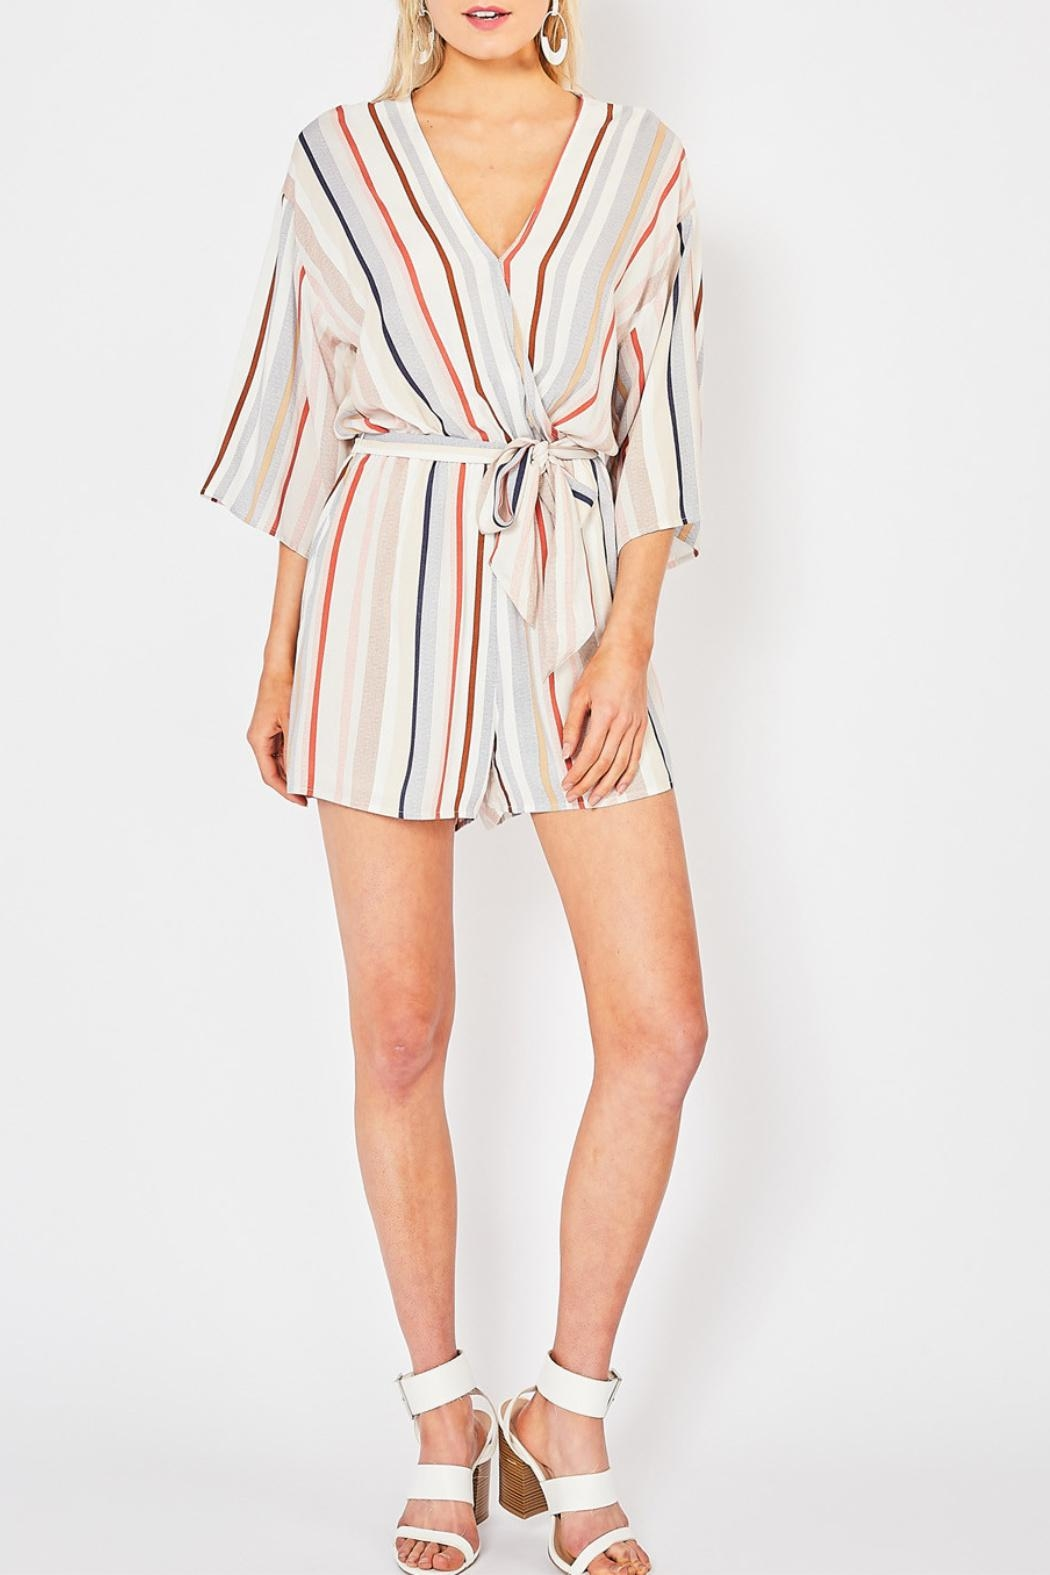 Entro Striped V-Neck Romper - Main Image